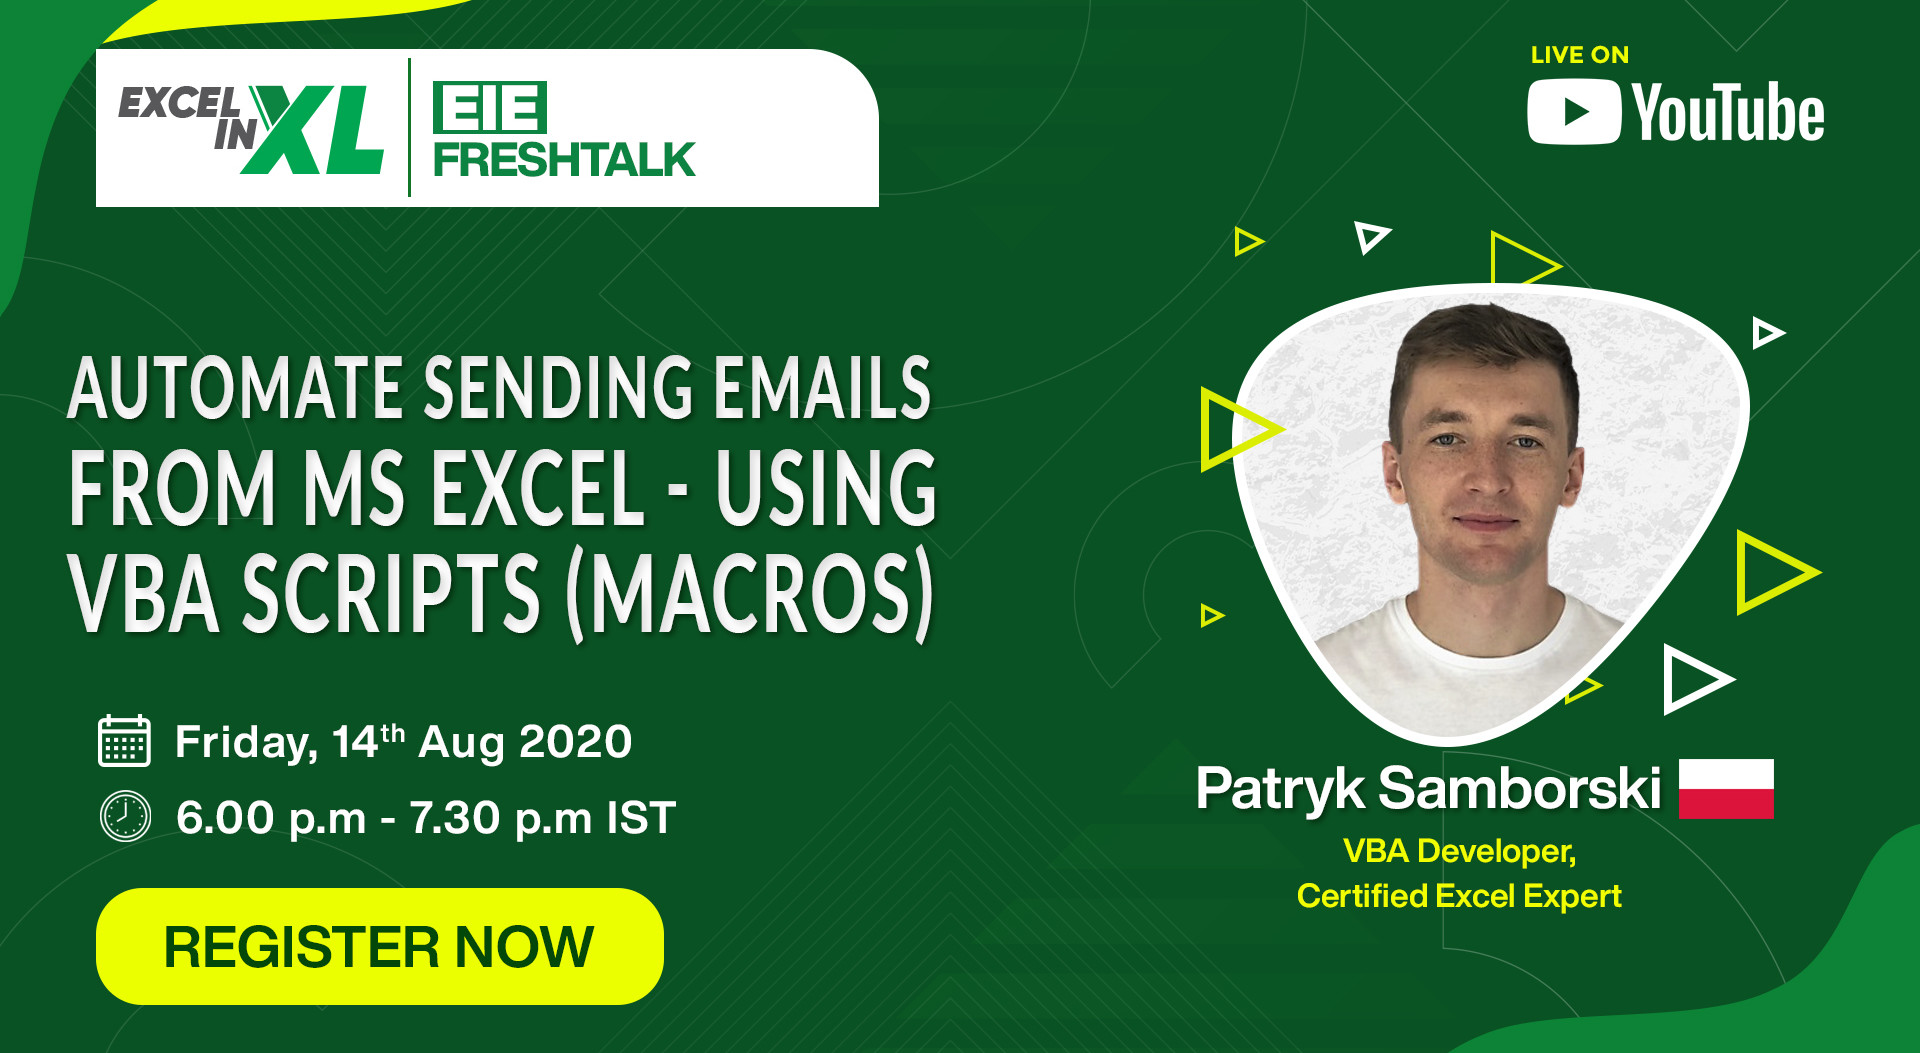 Automate Sending Emails From Ms Excel